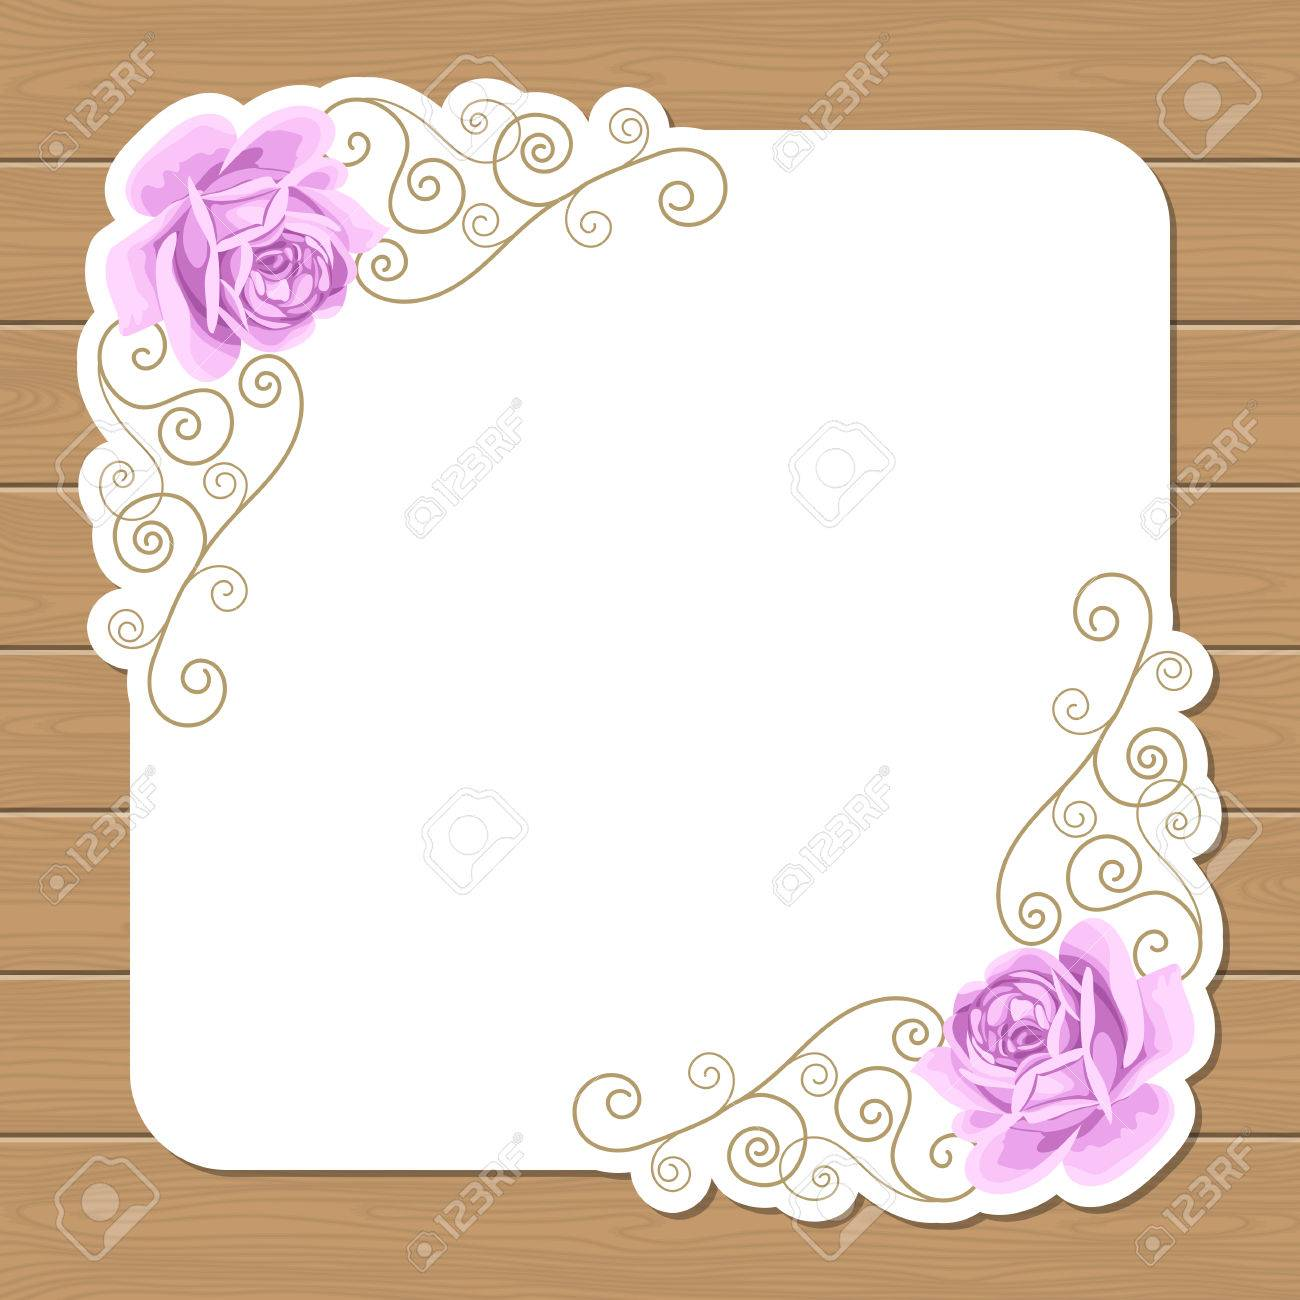 Wood Background With Hand Draw Roses And Gold Curly Frame. Shabby ...